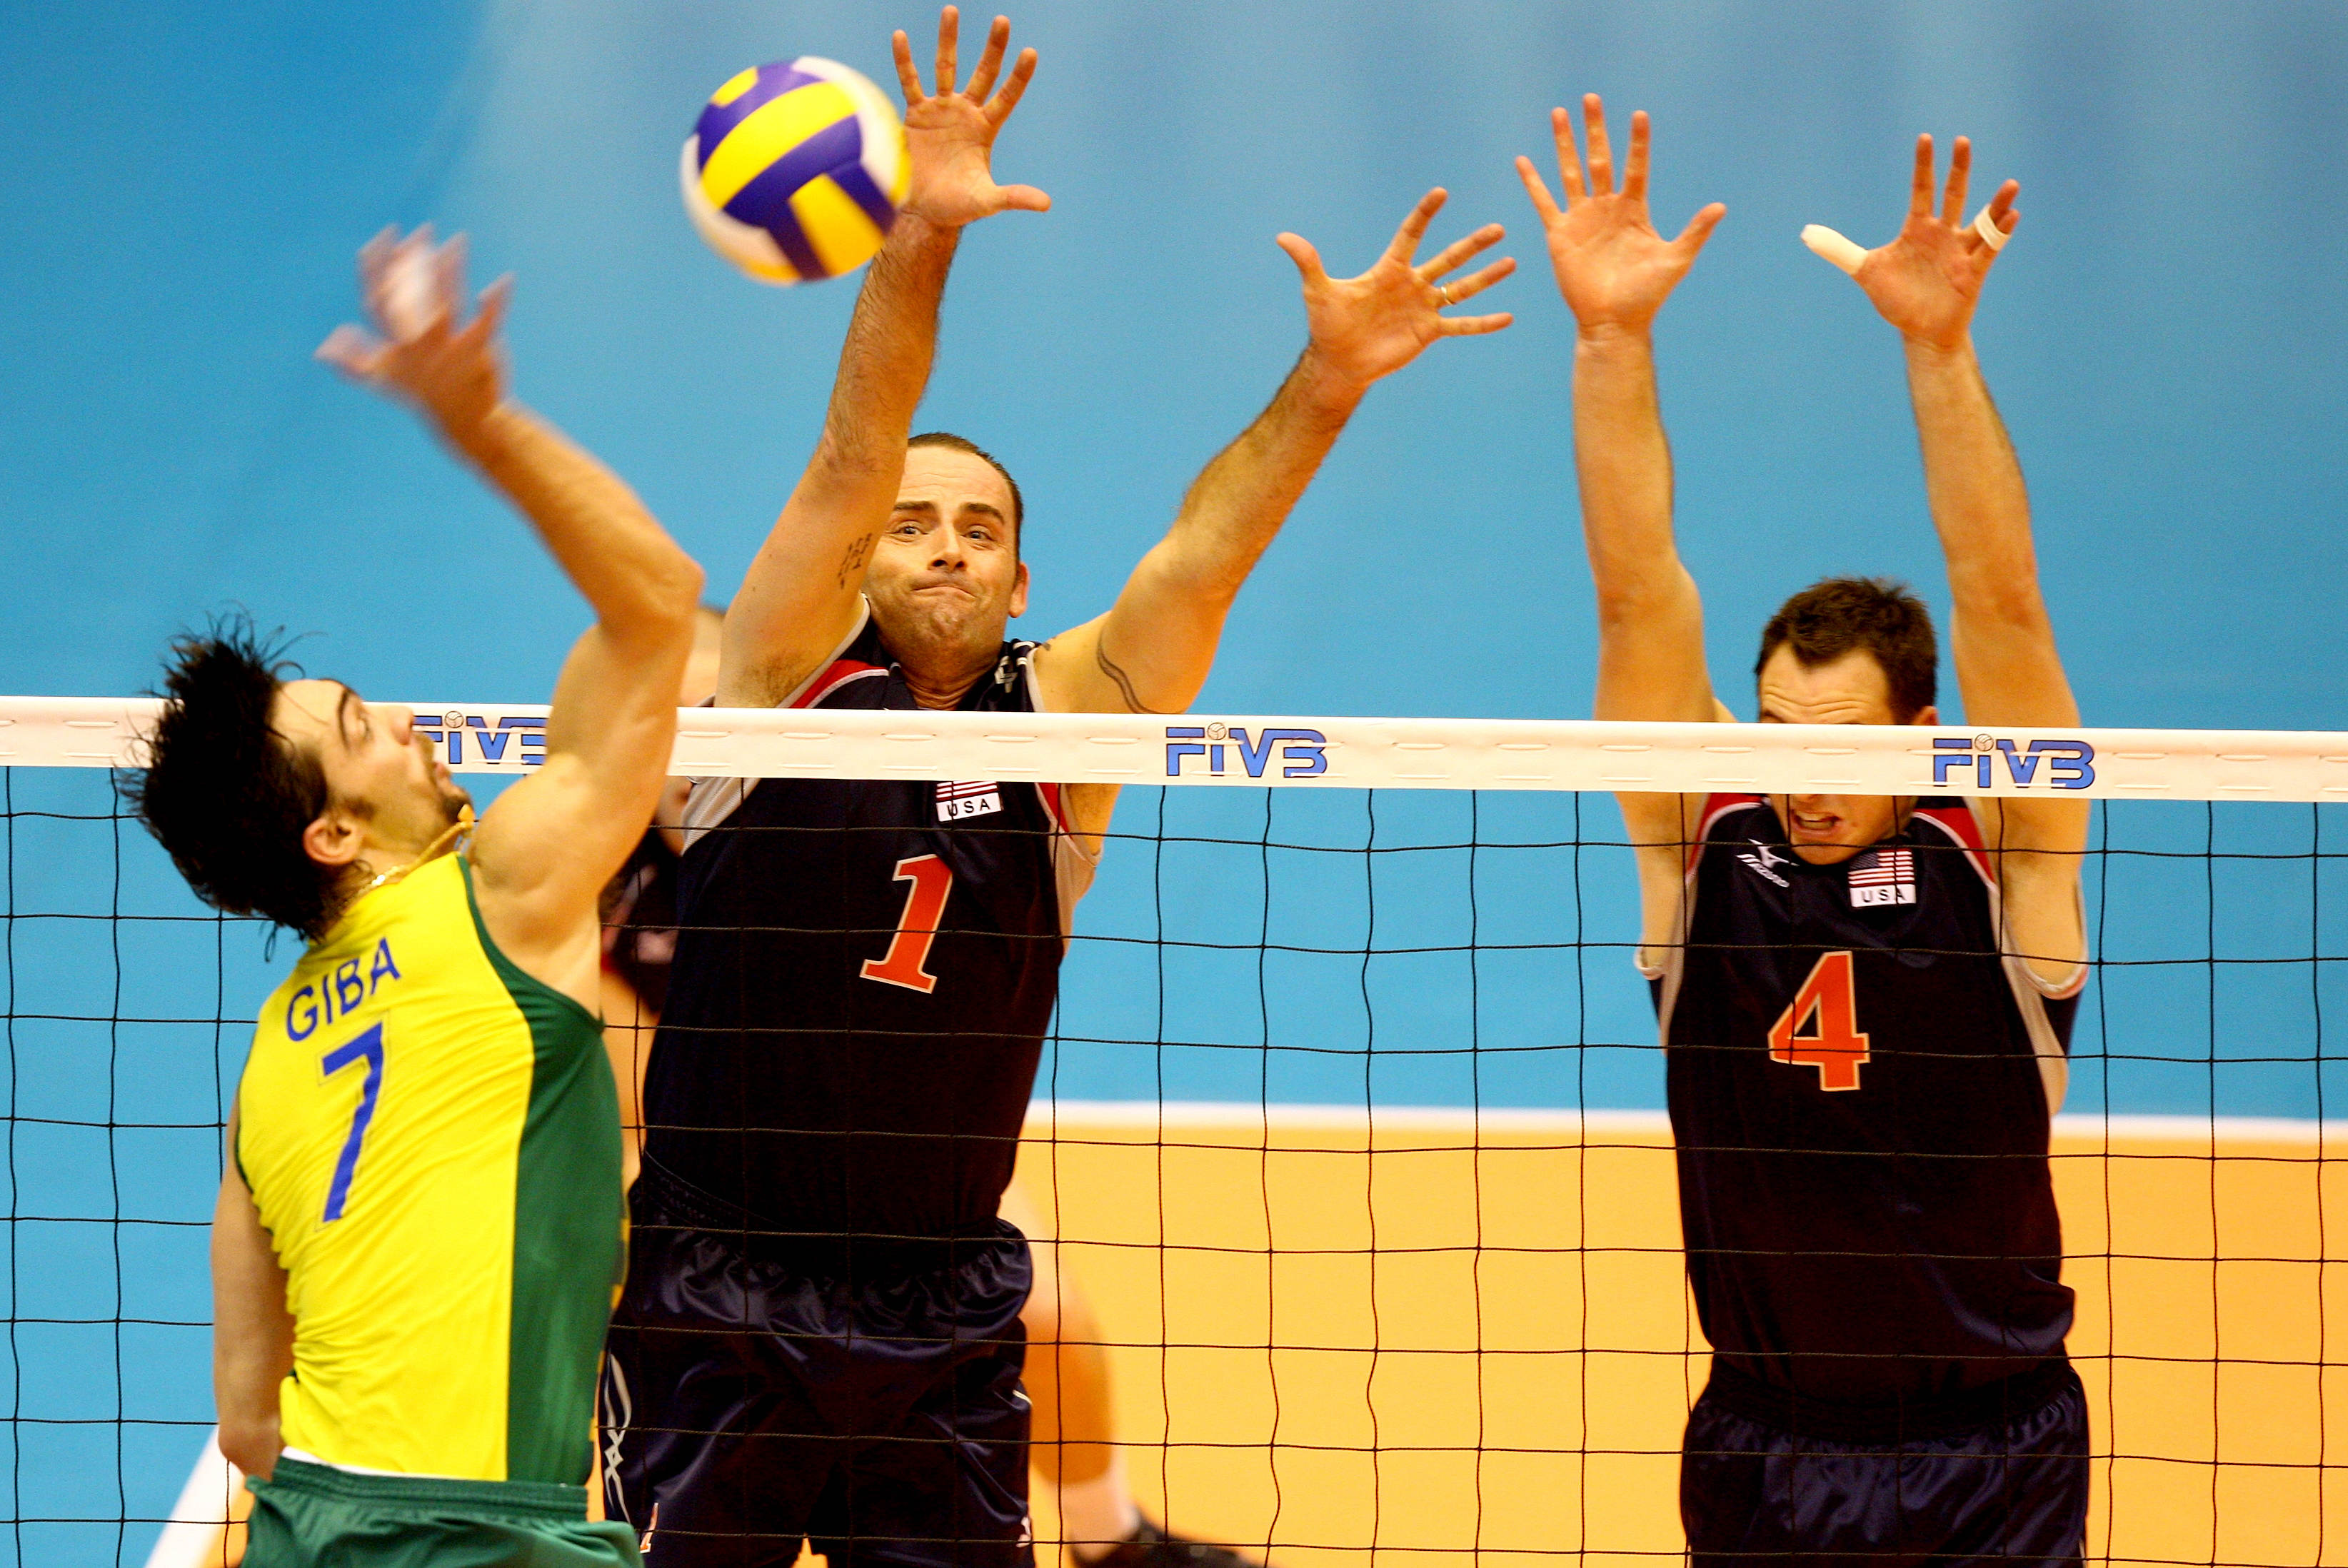 http://www.fivb.org/Vis2009/Images/GetImage.asmx?No=200632343